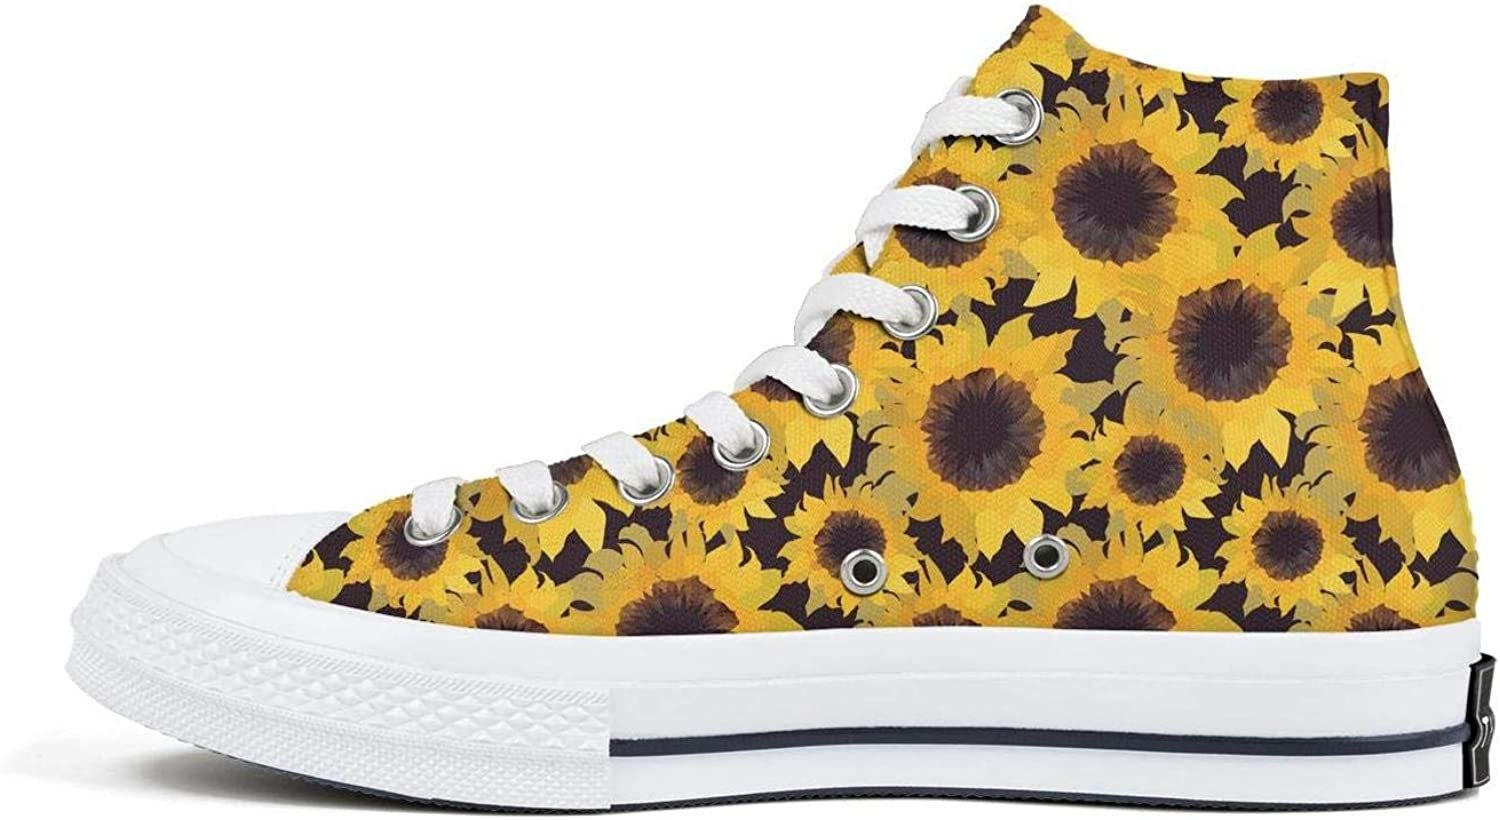 isjdsoa Red Sketch of Stylized Golden Sunflowers Canvas Sneakers High Top Lace Ups Casual Walking Shoes Fashion Sneakers